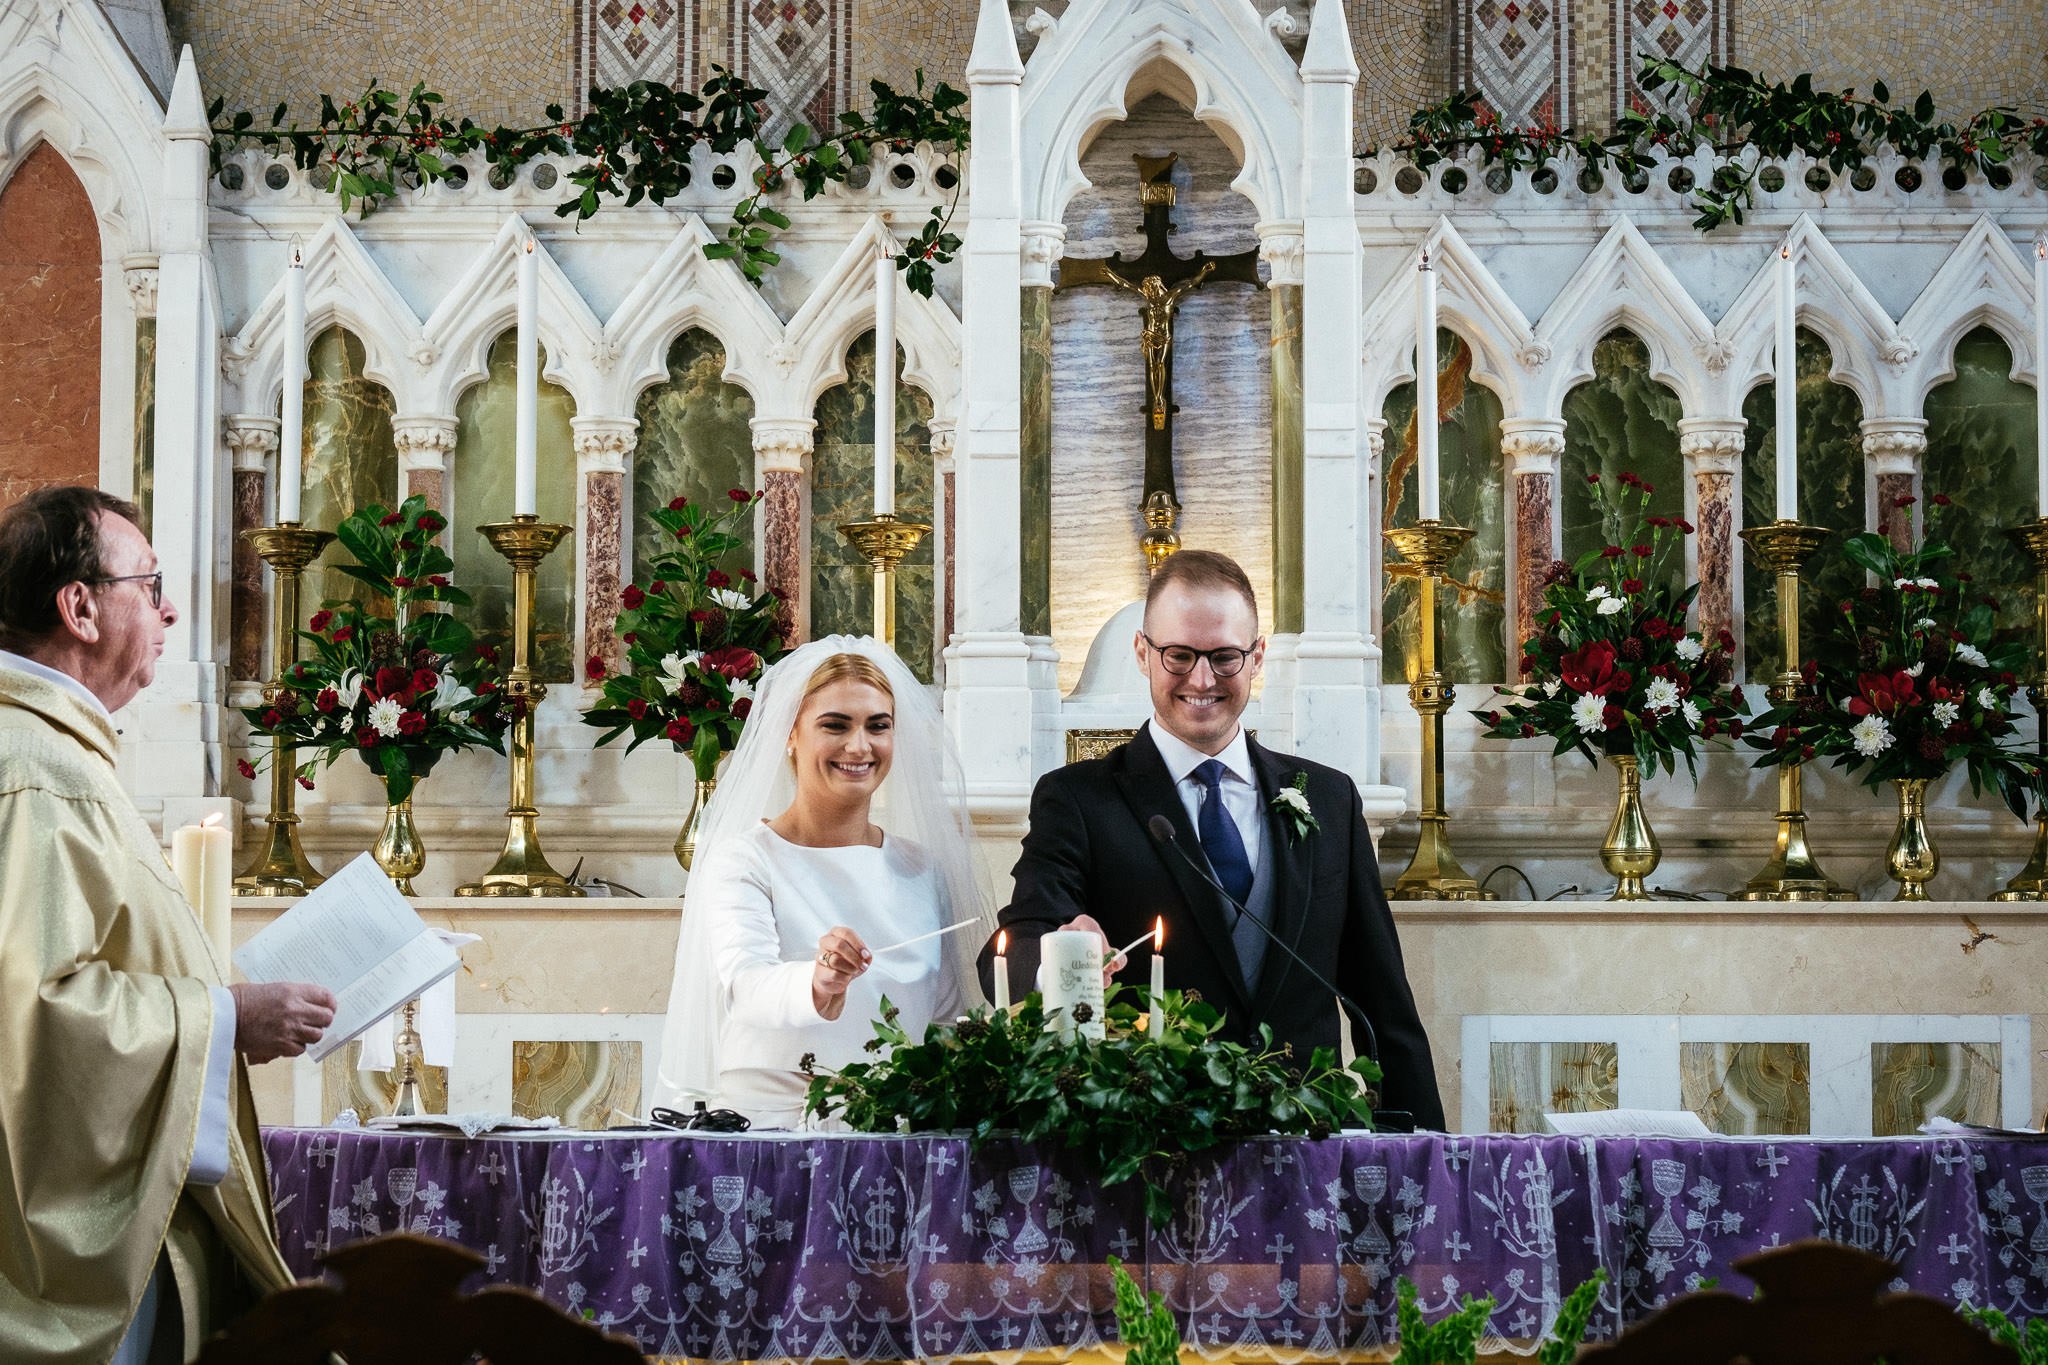 bride and groom lighting candles during wedding ceremony at St Brigid's Church Oldcastle